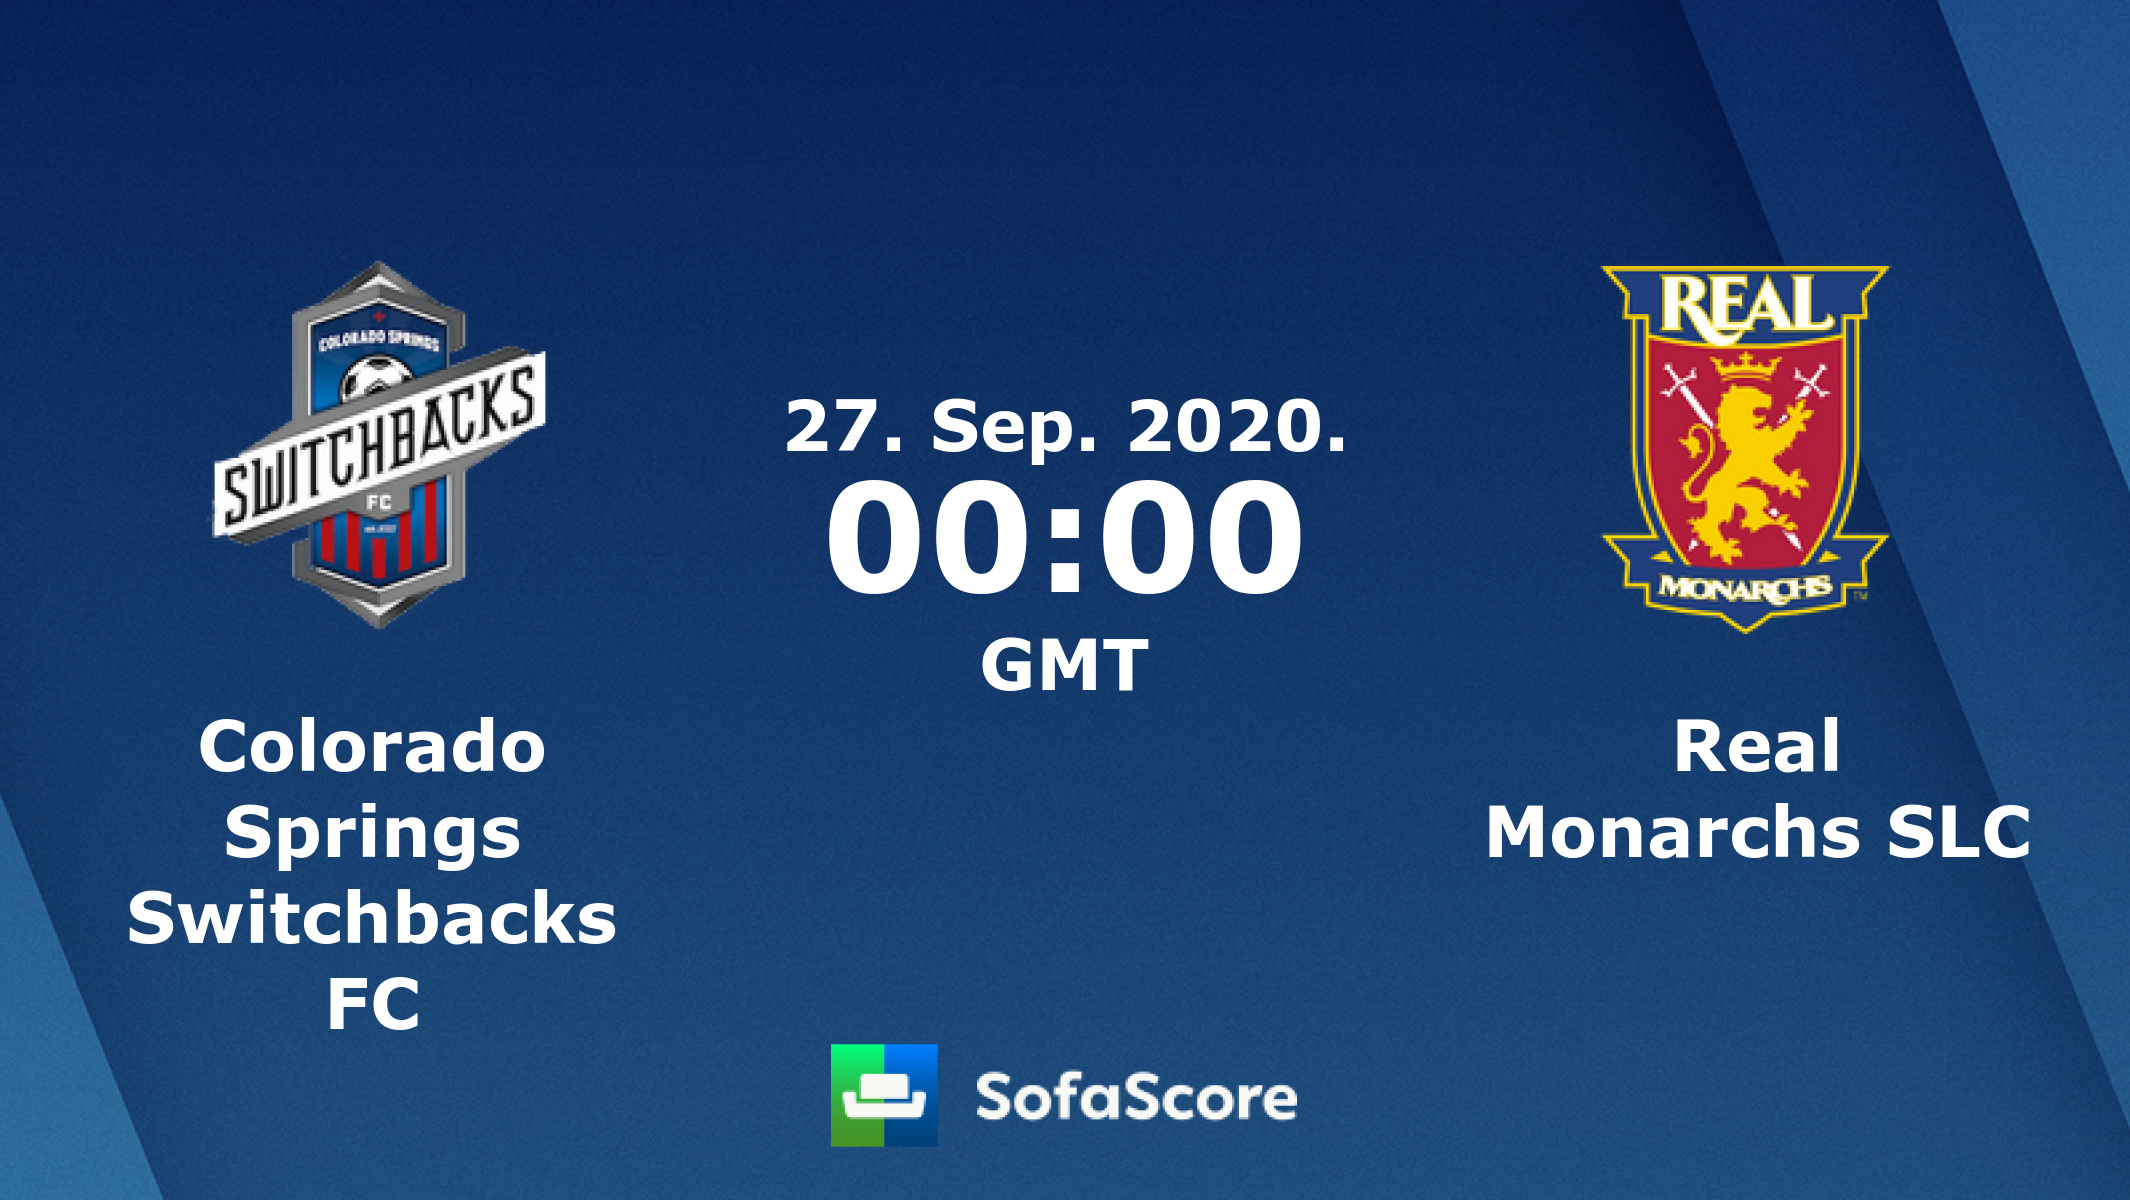 colorado springs switchbacks fc real monarchs slc live score video stream and h2h results sofascore colorado springs switchbacks fc real